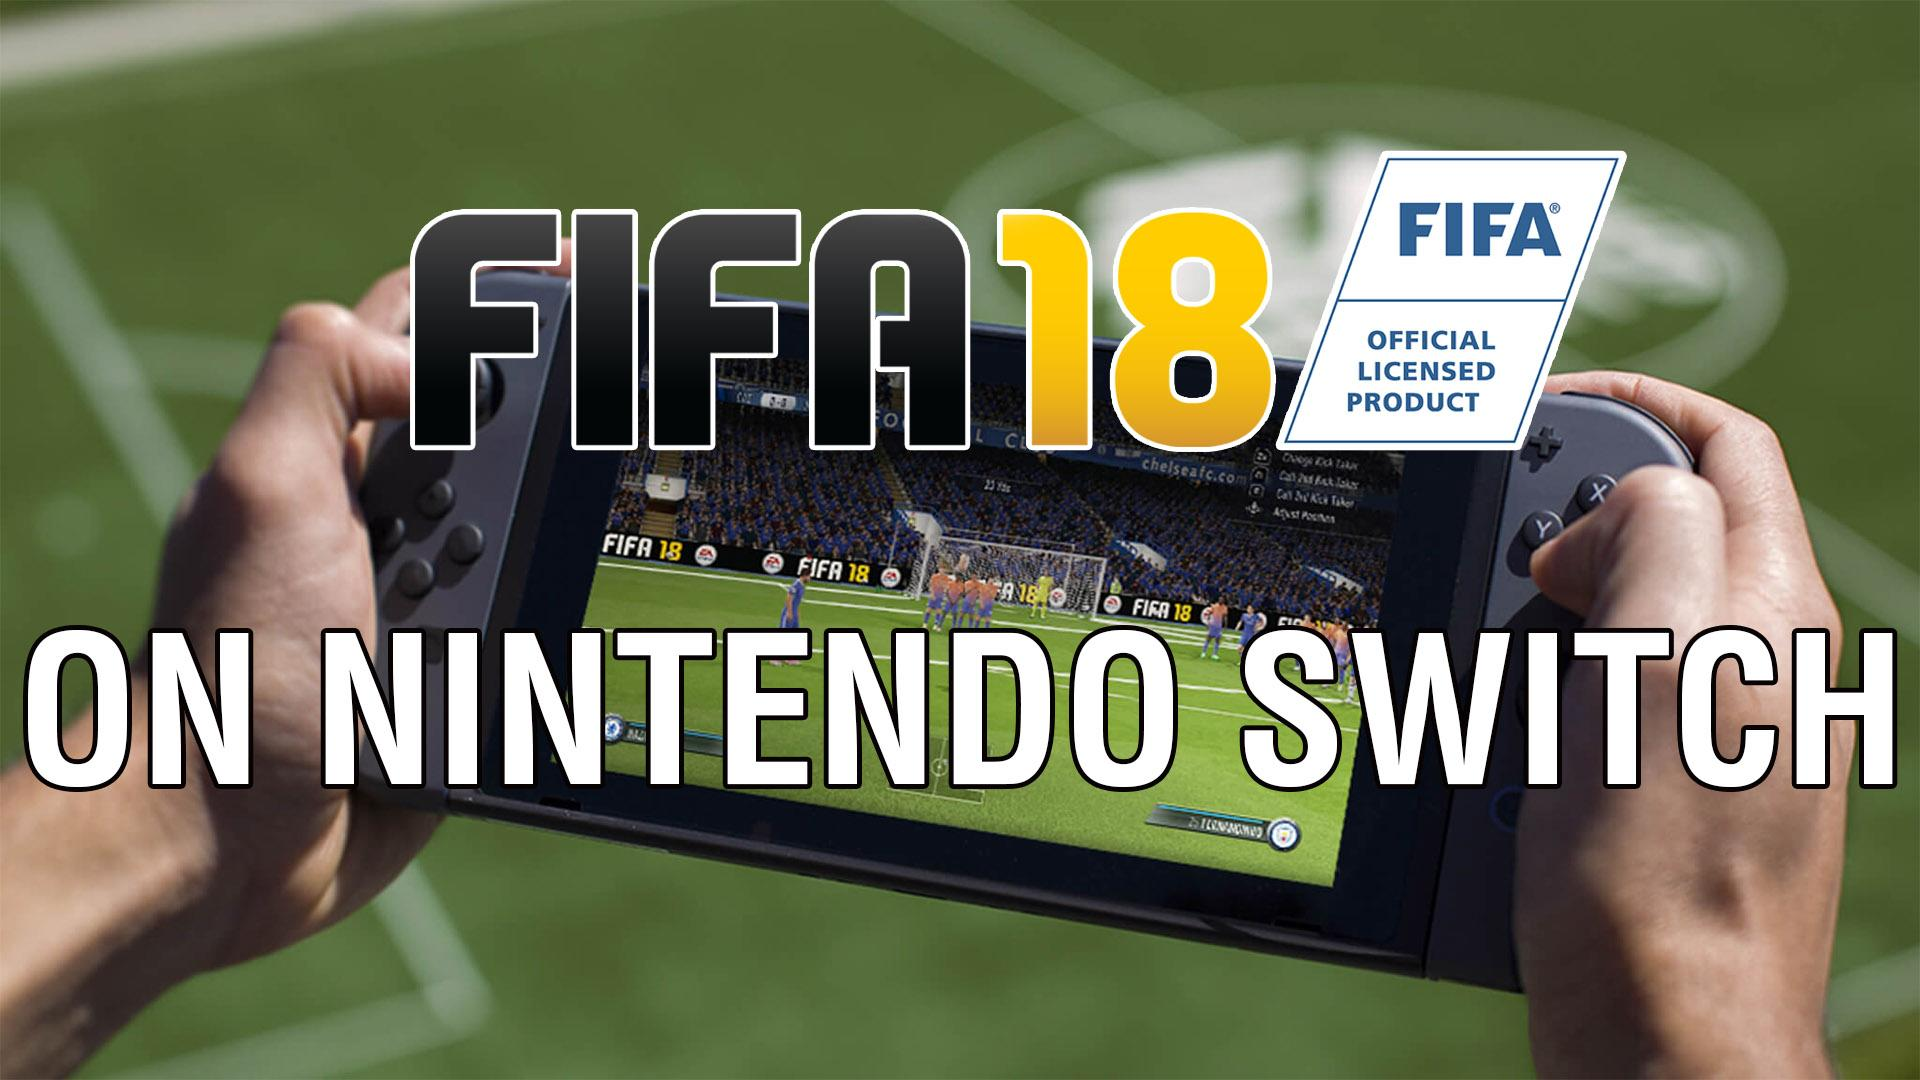 Fifa 18 On Nintendo Switch What Are The Differences To Ps4 And Xbox One Versions Is It Worth Buying